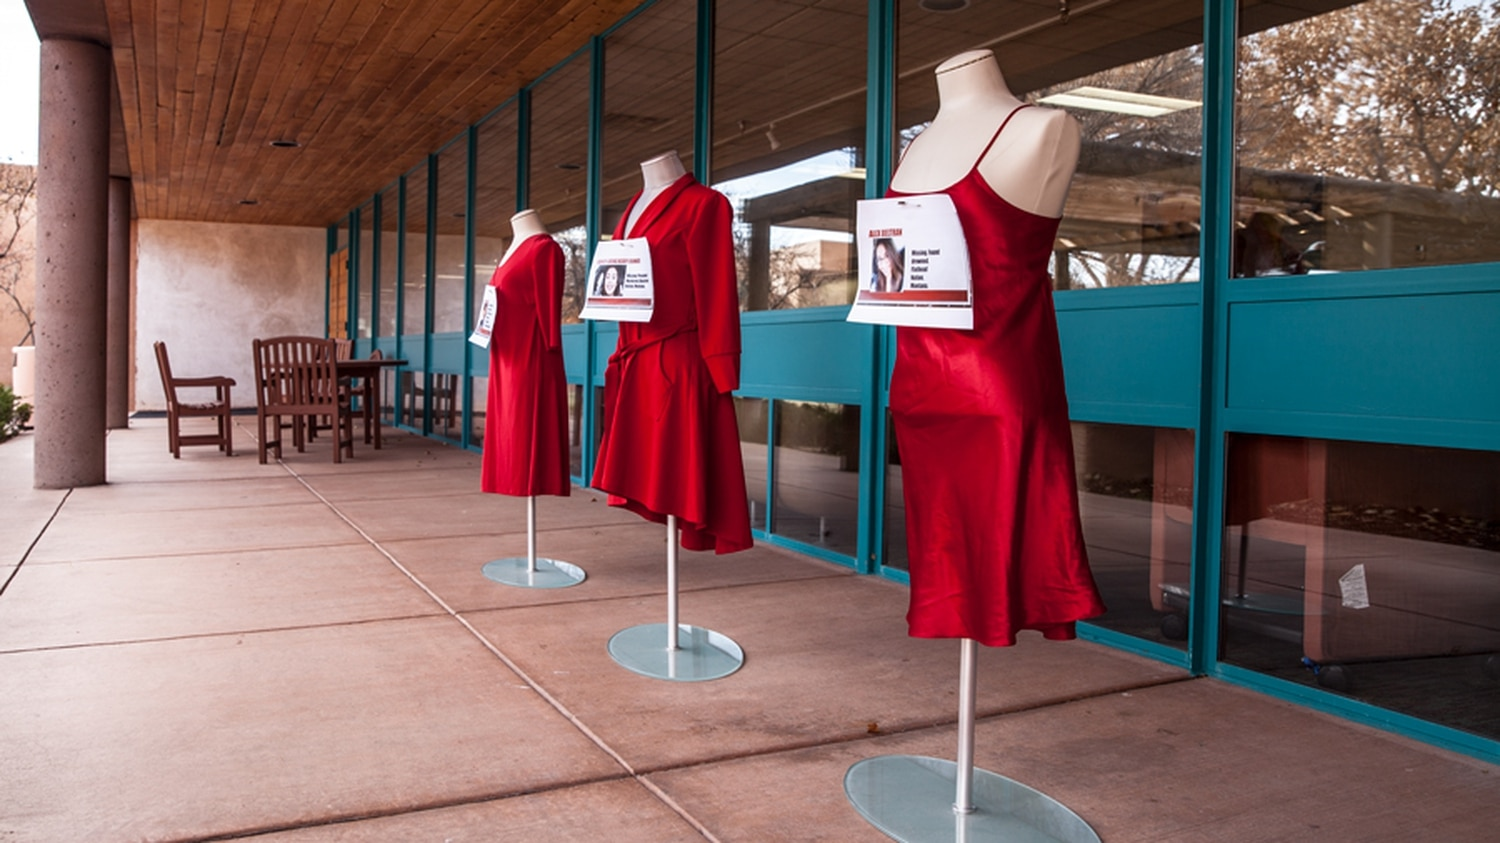 Red dresses featuring missing or murdered indigenous women.